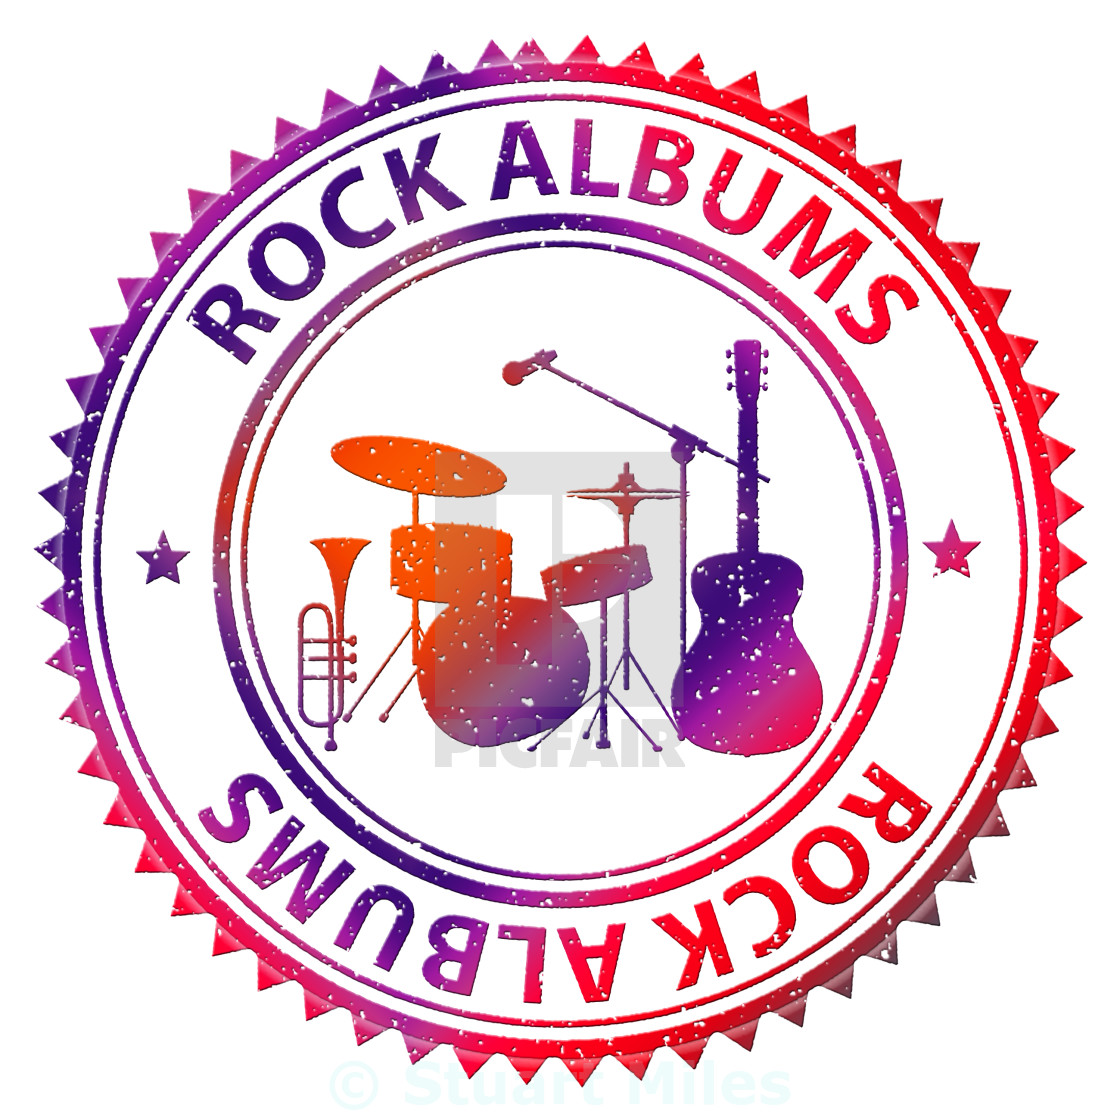 Rock Albums Shows CD Collection And Music - License